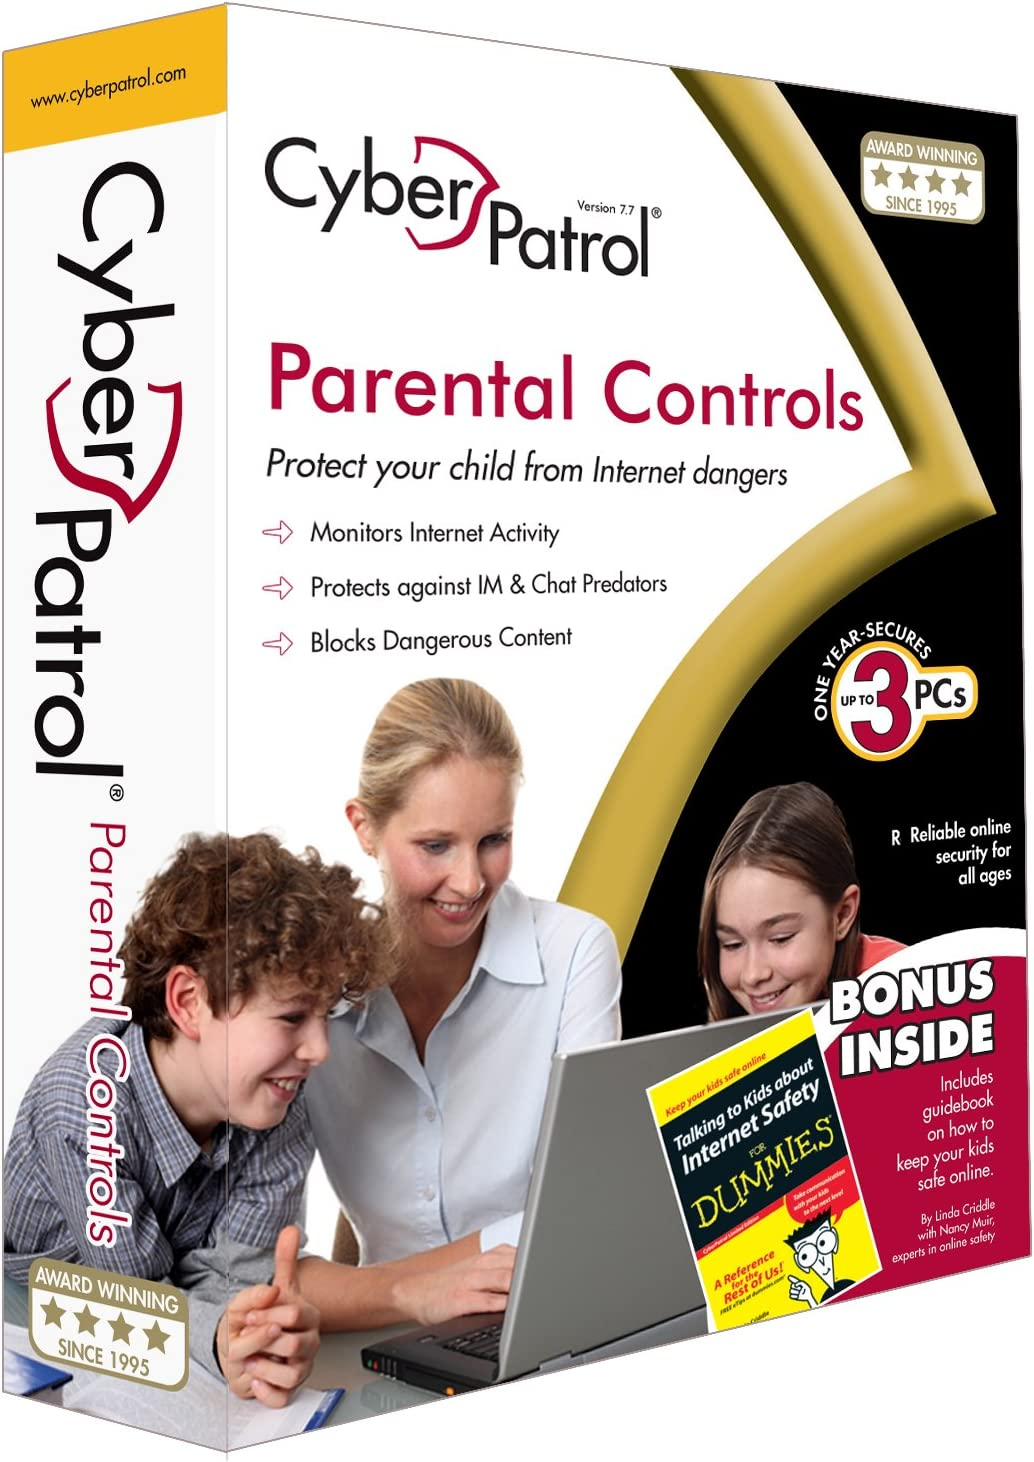 CyberPatrol Parental Controls 7.7 71-OWi4P4gL